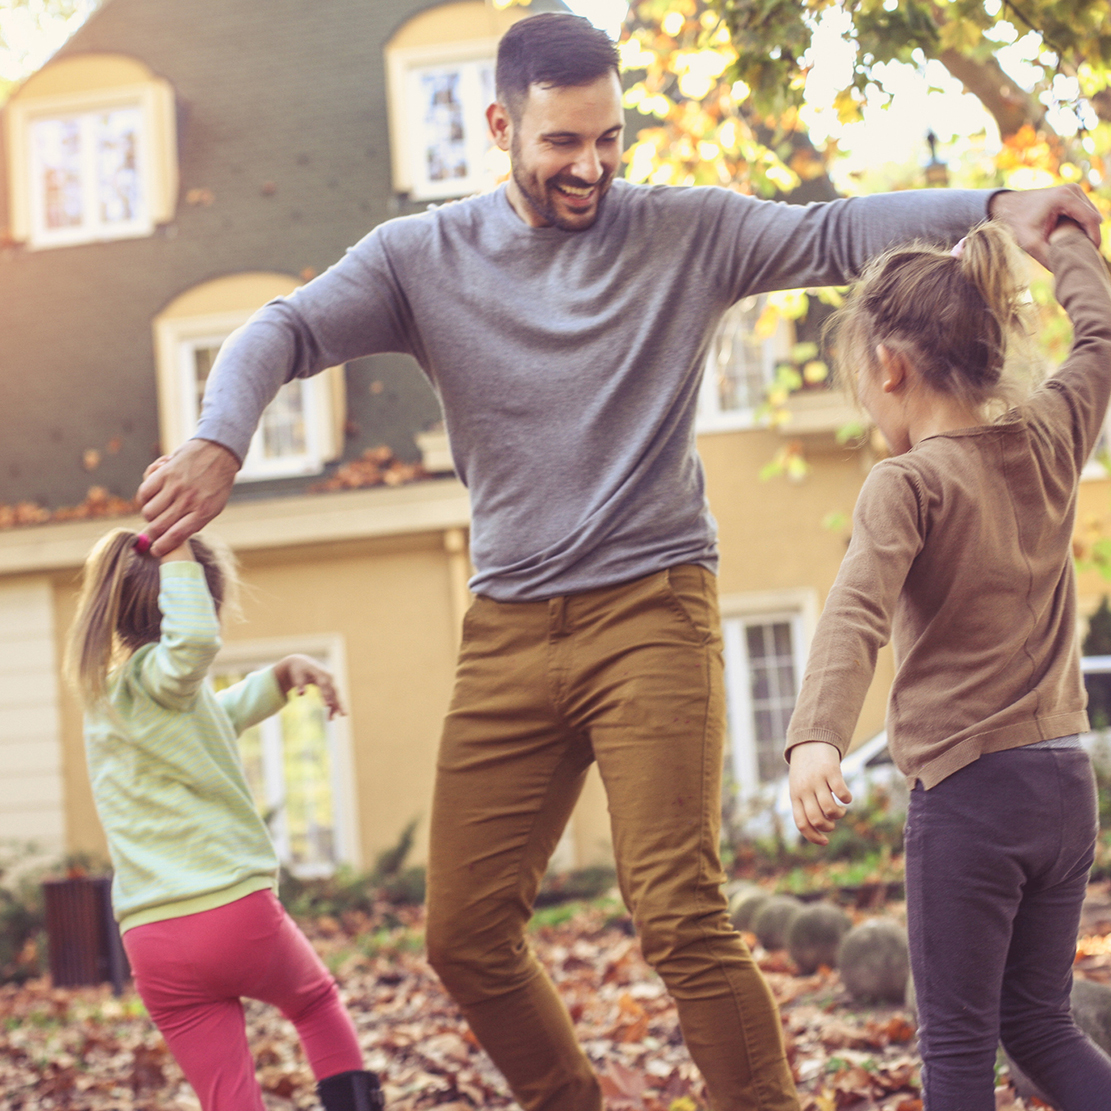 father dancing and playing with his two daughters in their yard among the fall leaves